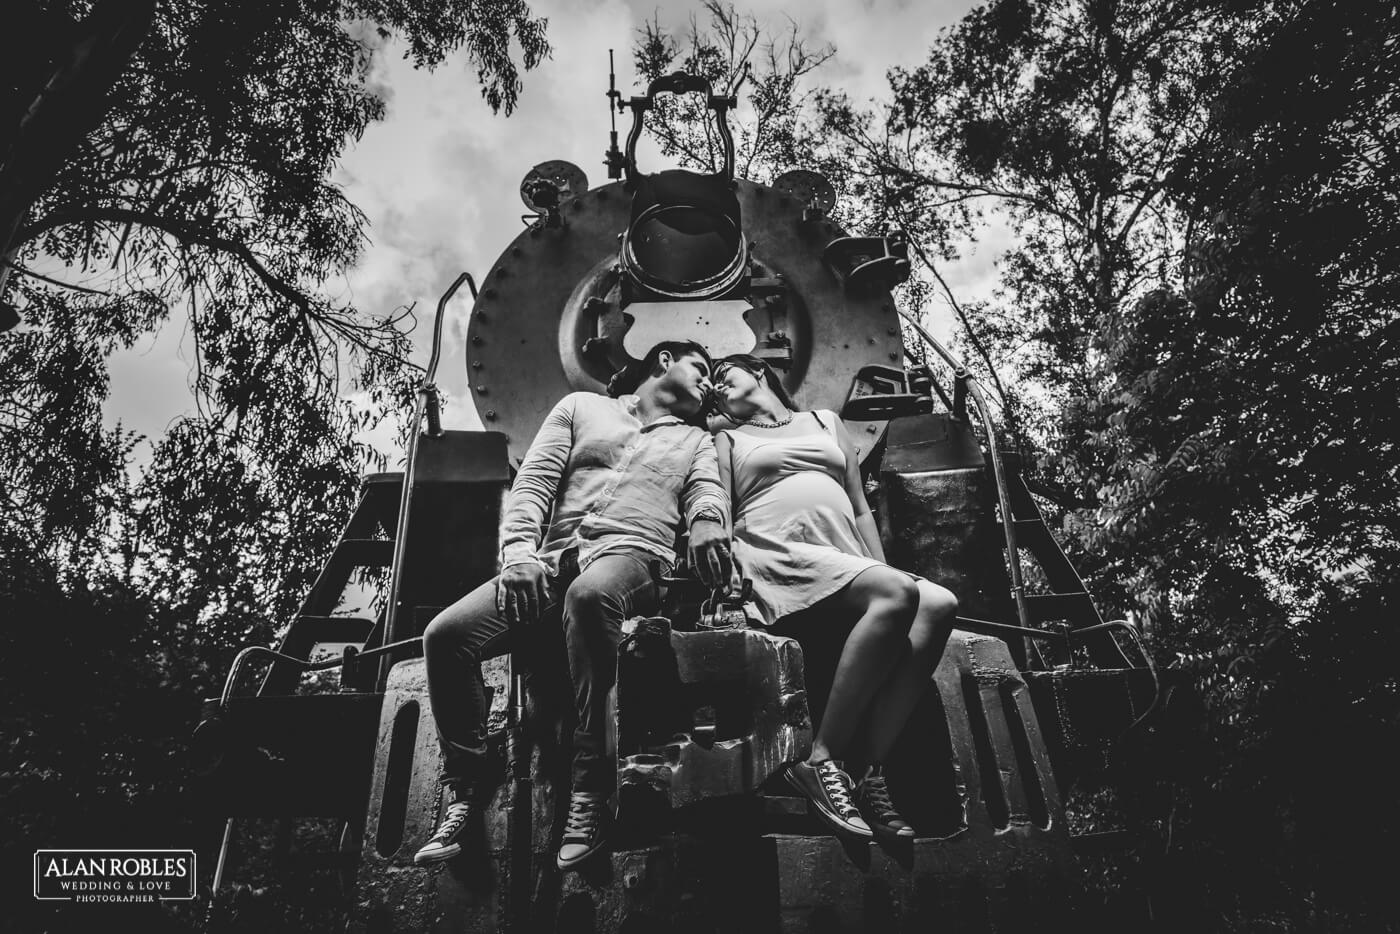 Tren Blanco y Negro Alan Robles Wedding & Love Photographer - Fotografo Bodas Guadalajara